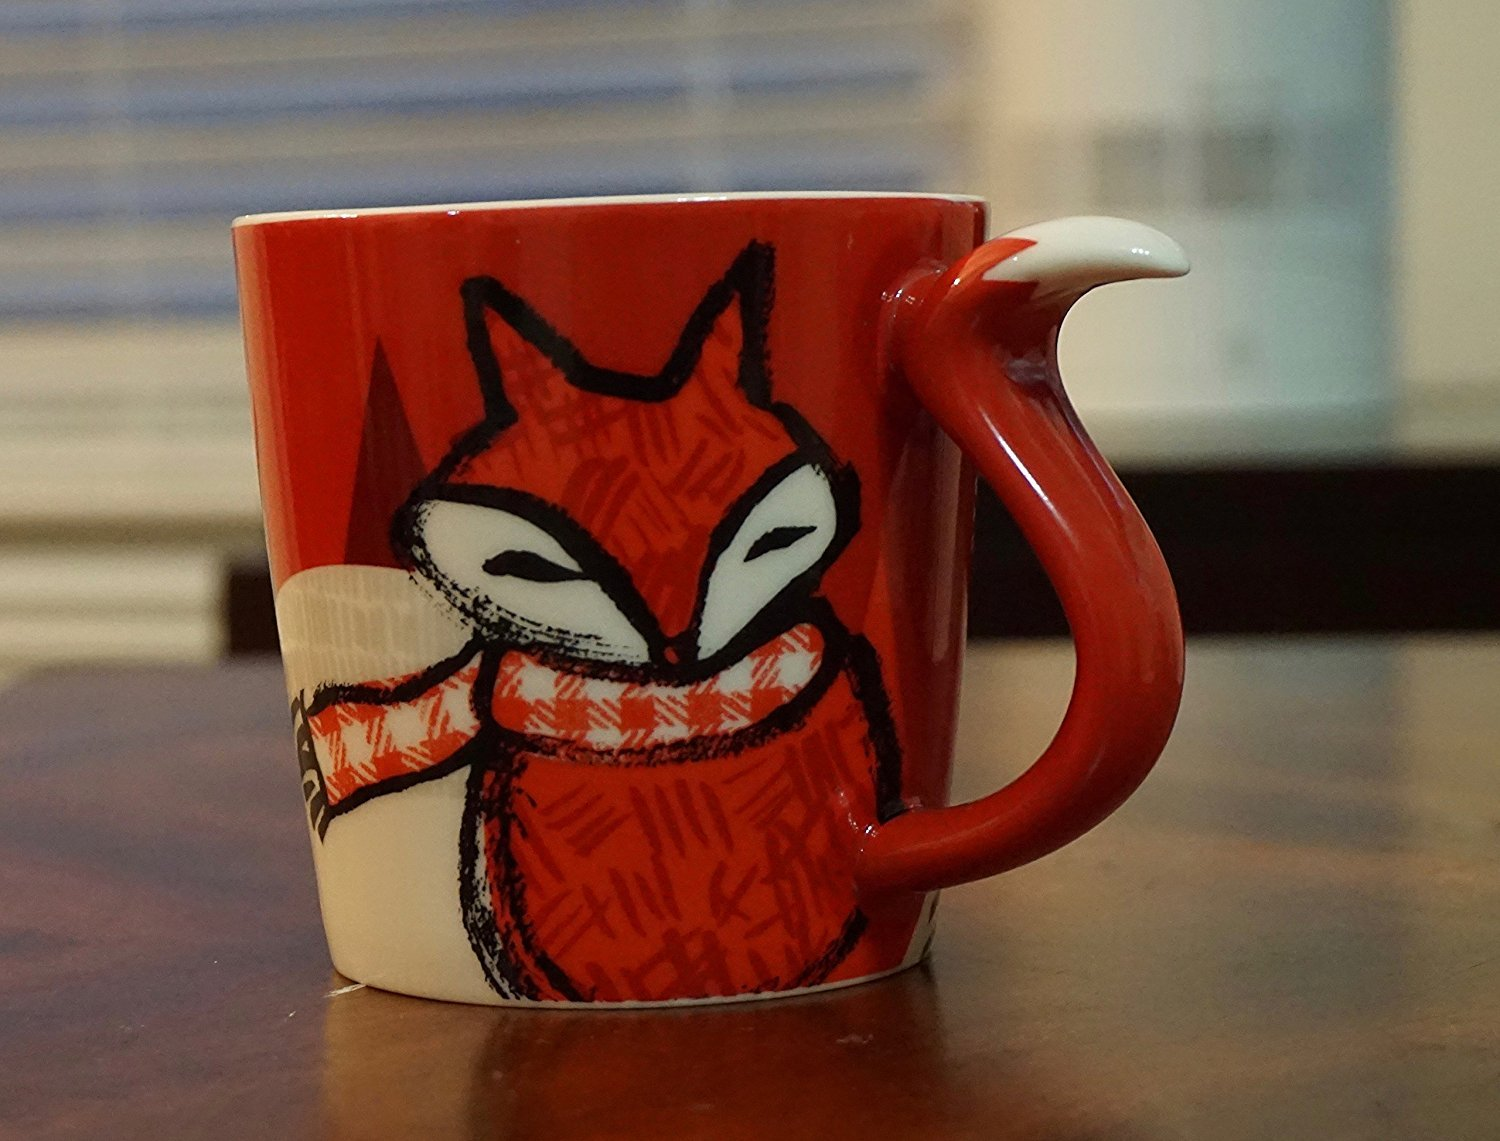 RARE Starbucks Holiday RED FOX Mug 12 Oz. 2016 by Starbucks (Image #1)